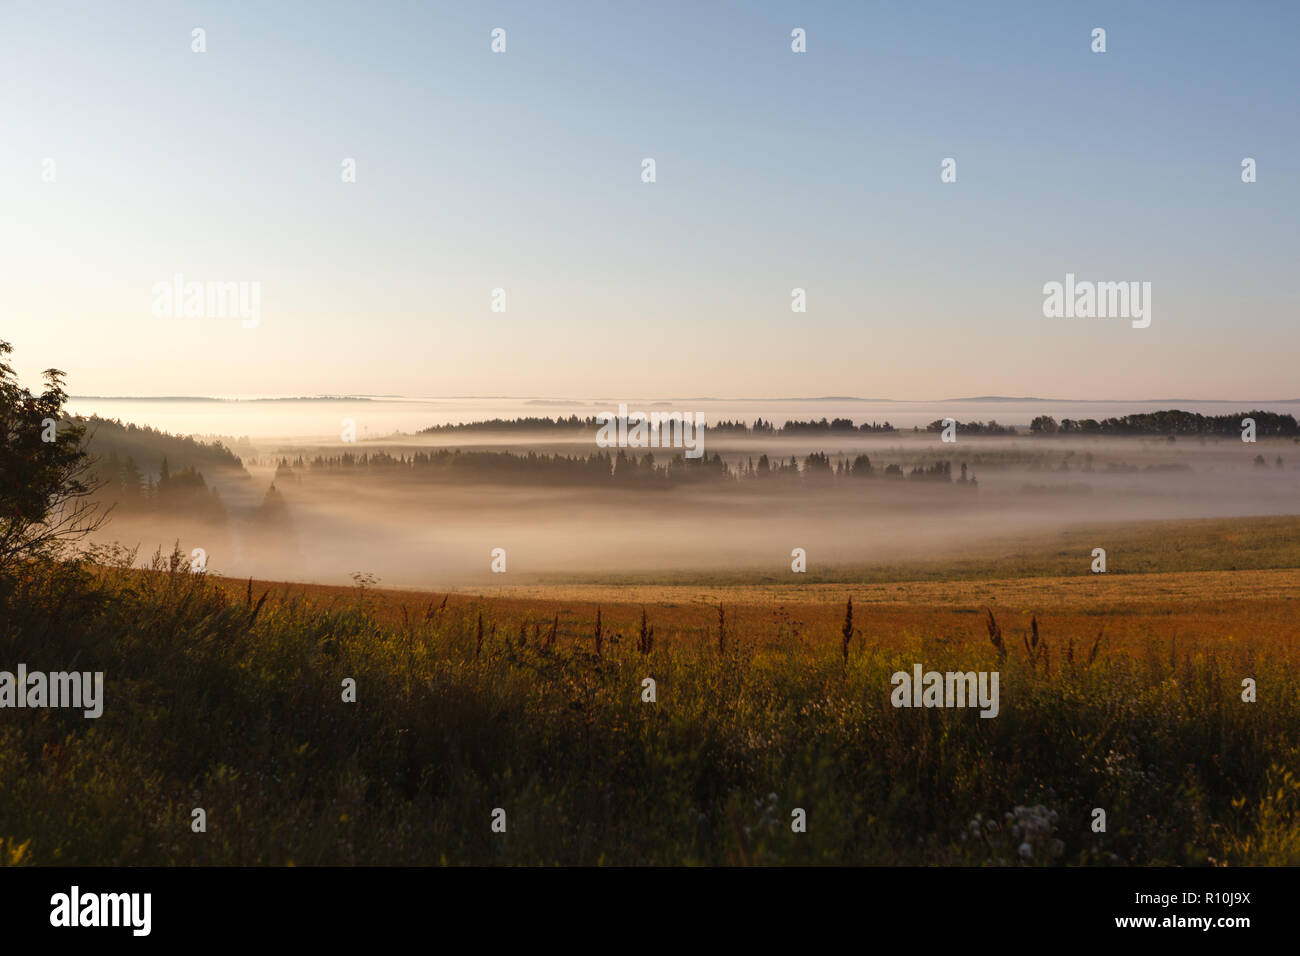 The May field in the sun and the fog - Stock Image